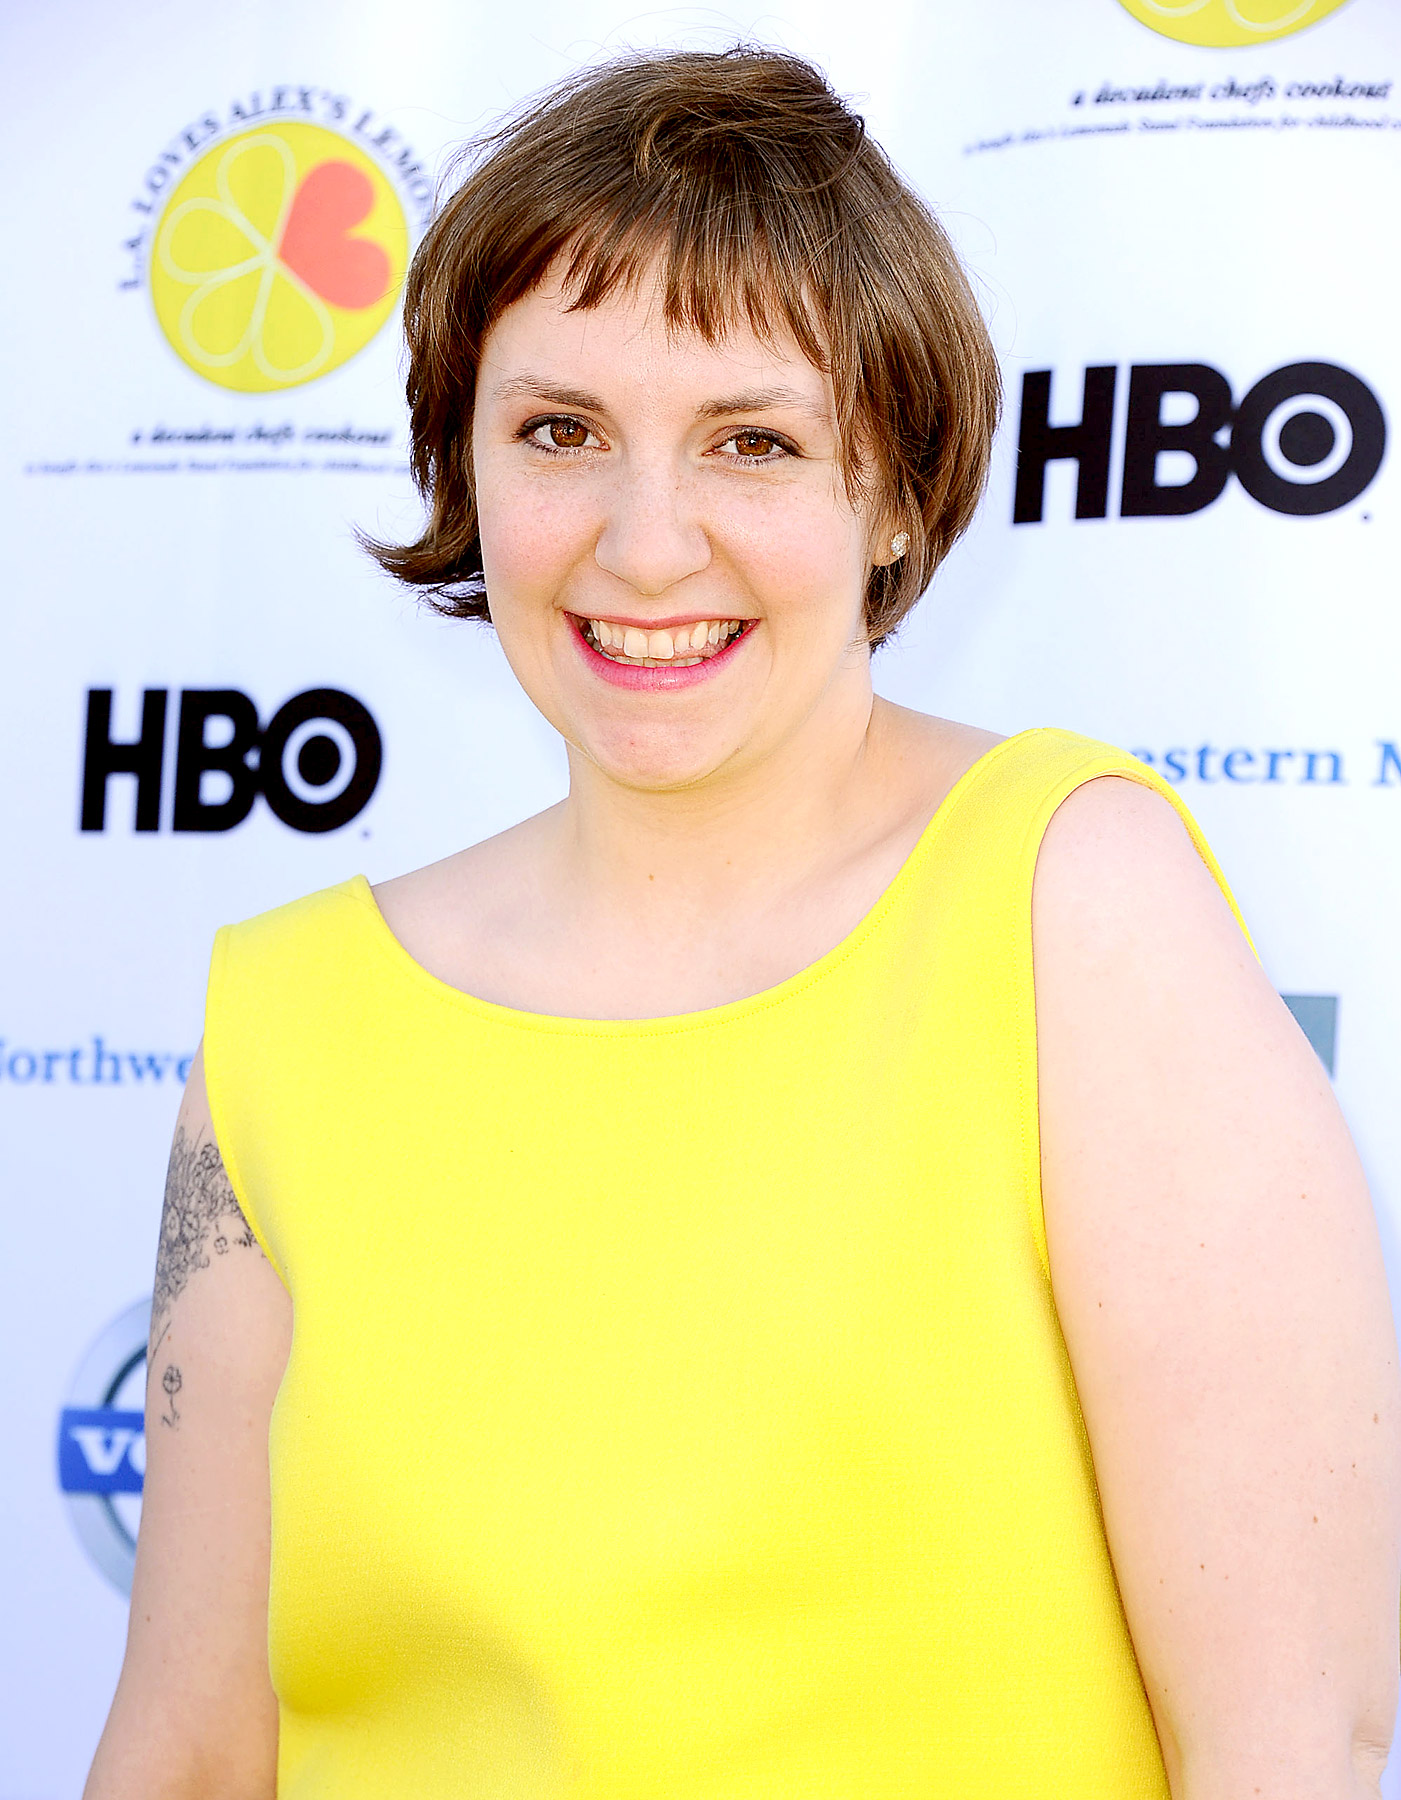 """Similar to her Girls persona, Lena Dunham doesn't have a good track record with drugs. In a January 2014 interview with The Guardian, she admitted, """"I tried coke, but was a total failure. I snorted a little bit, then always sneezed. It was sadder than having not tried drugs, in that I tried drugs and failed at trying drugs."""""""